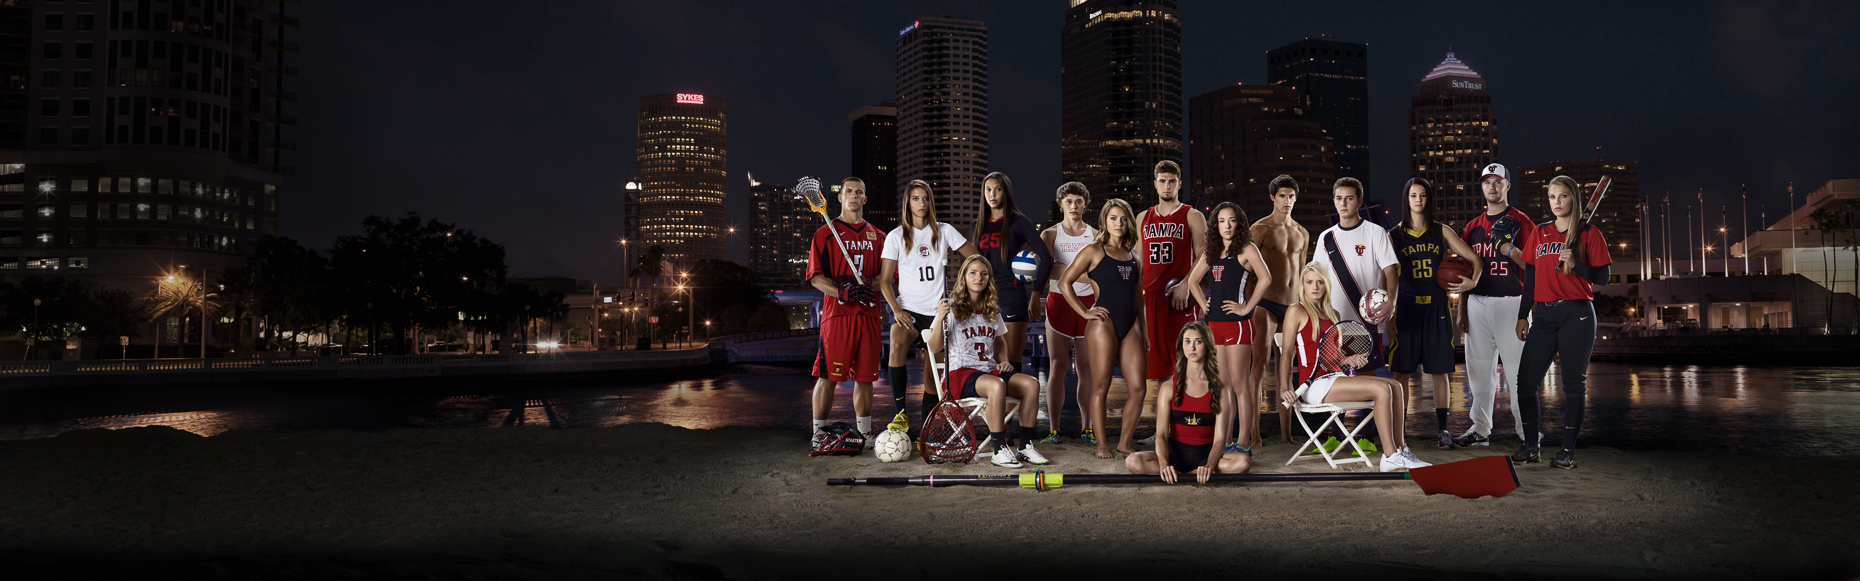 Captains of University of Tampa athletic teams 2015